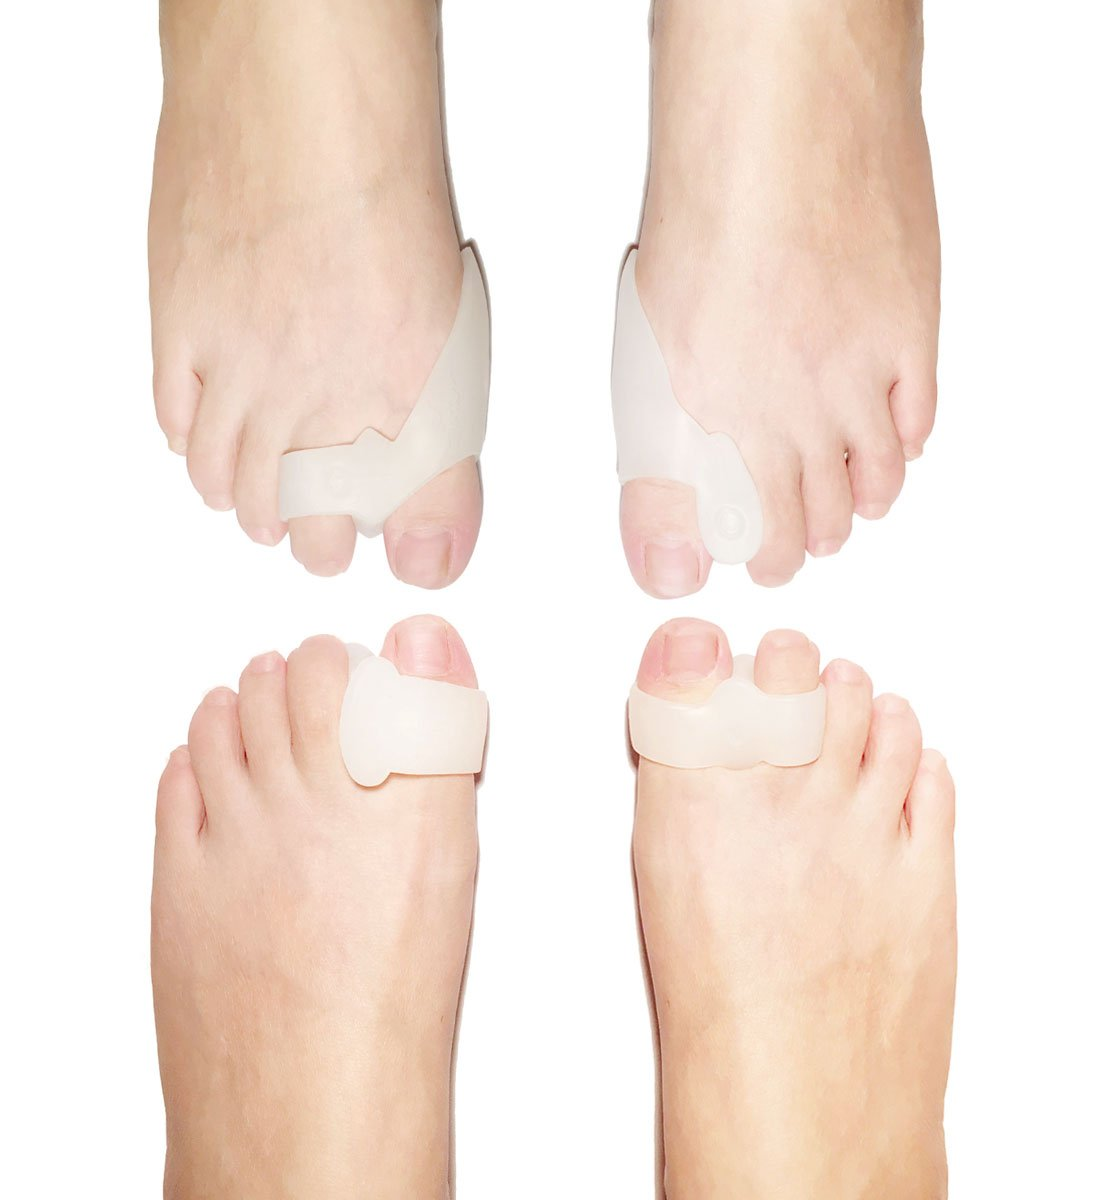 Takit 8 Piece Bunion Pad & Spacer Kit - 4 Pairs Of Soft Gel Toe Separators & Bunion Cushions - One Size Fits All Bunions Treatment - Fast Bunion Relief - Wear With Shoes - For Men & Wome